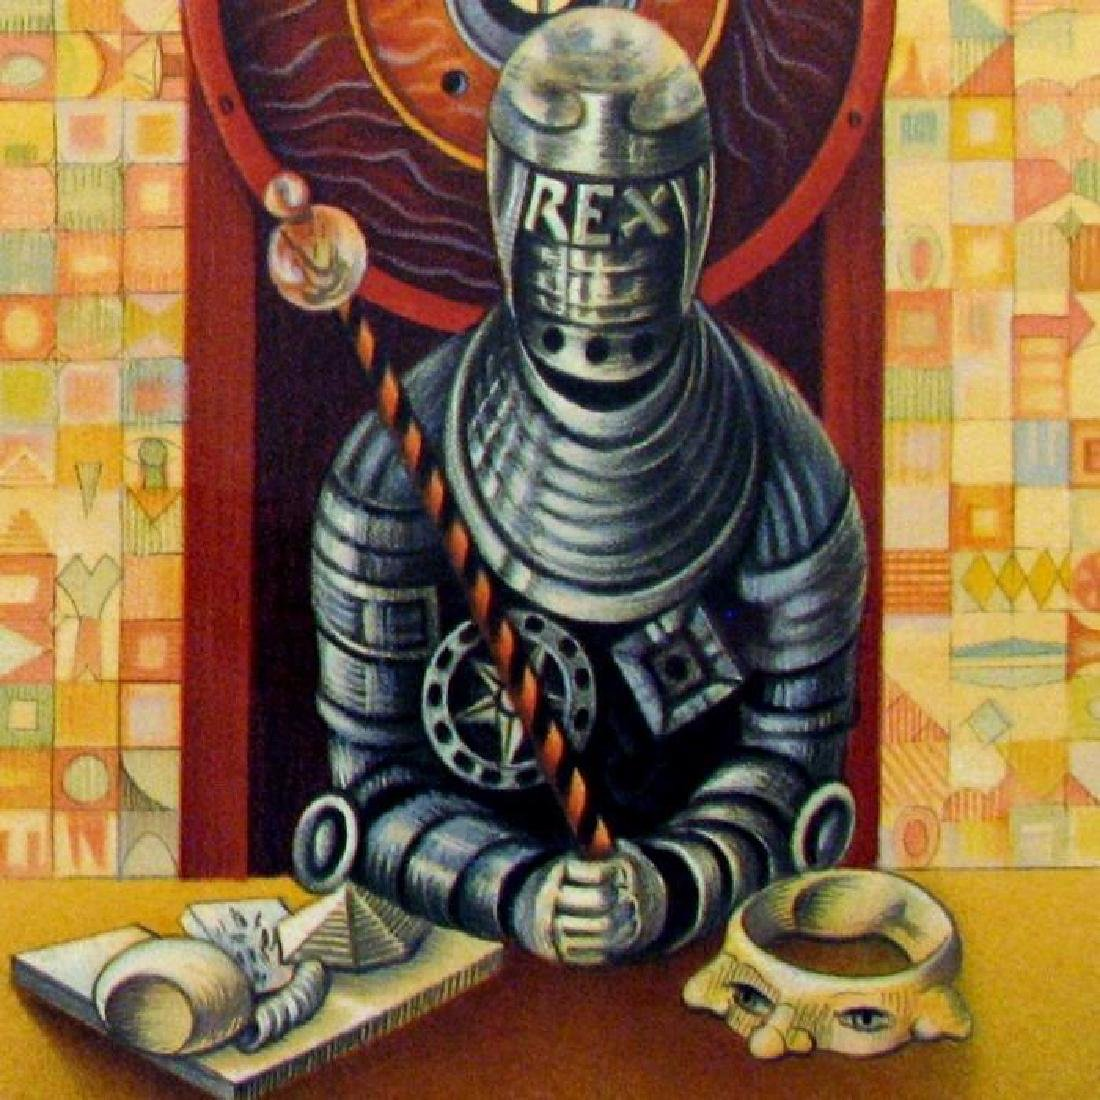 Chess King Art Signed Lithograph Limited Edition Only - 3